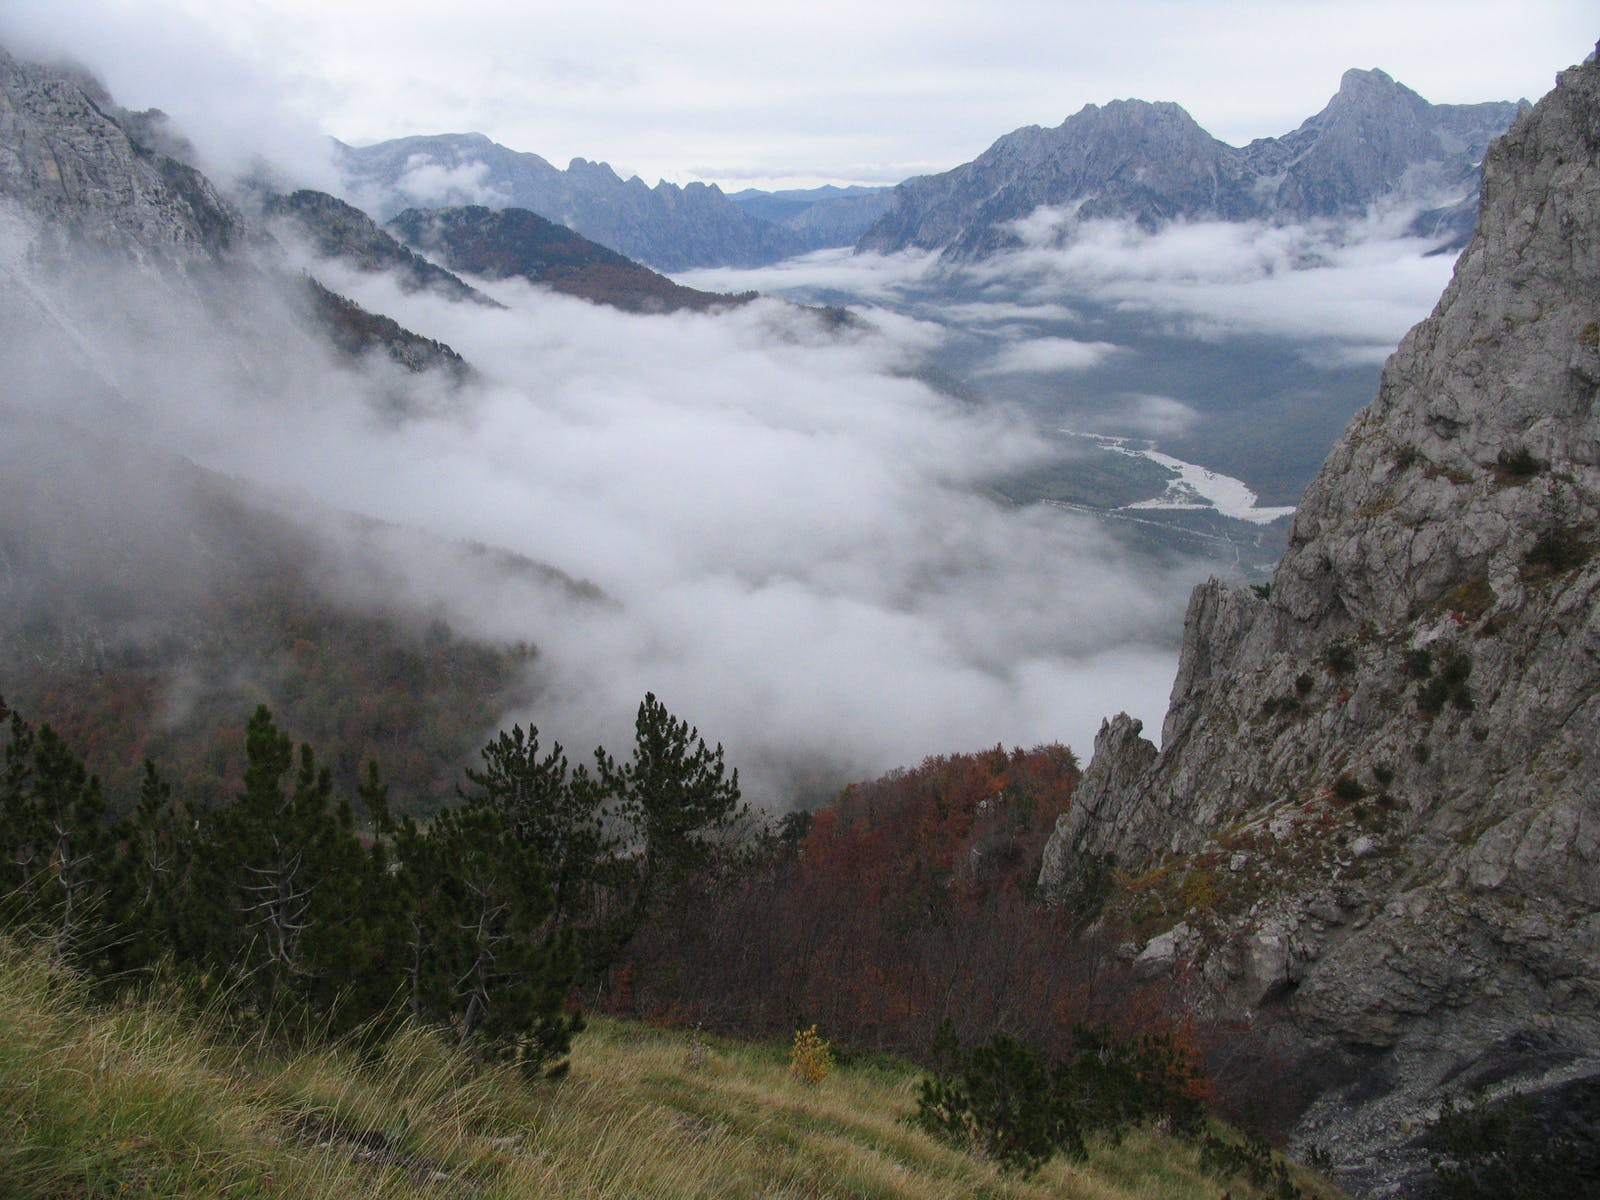 Dinaric Mountains Mixed Forests